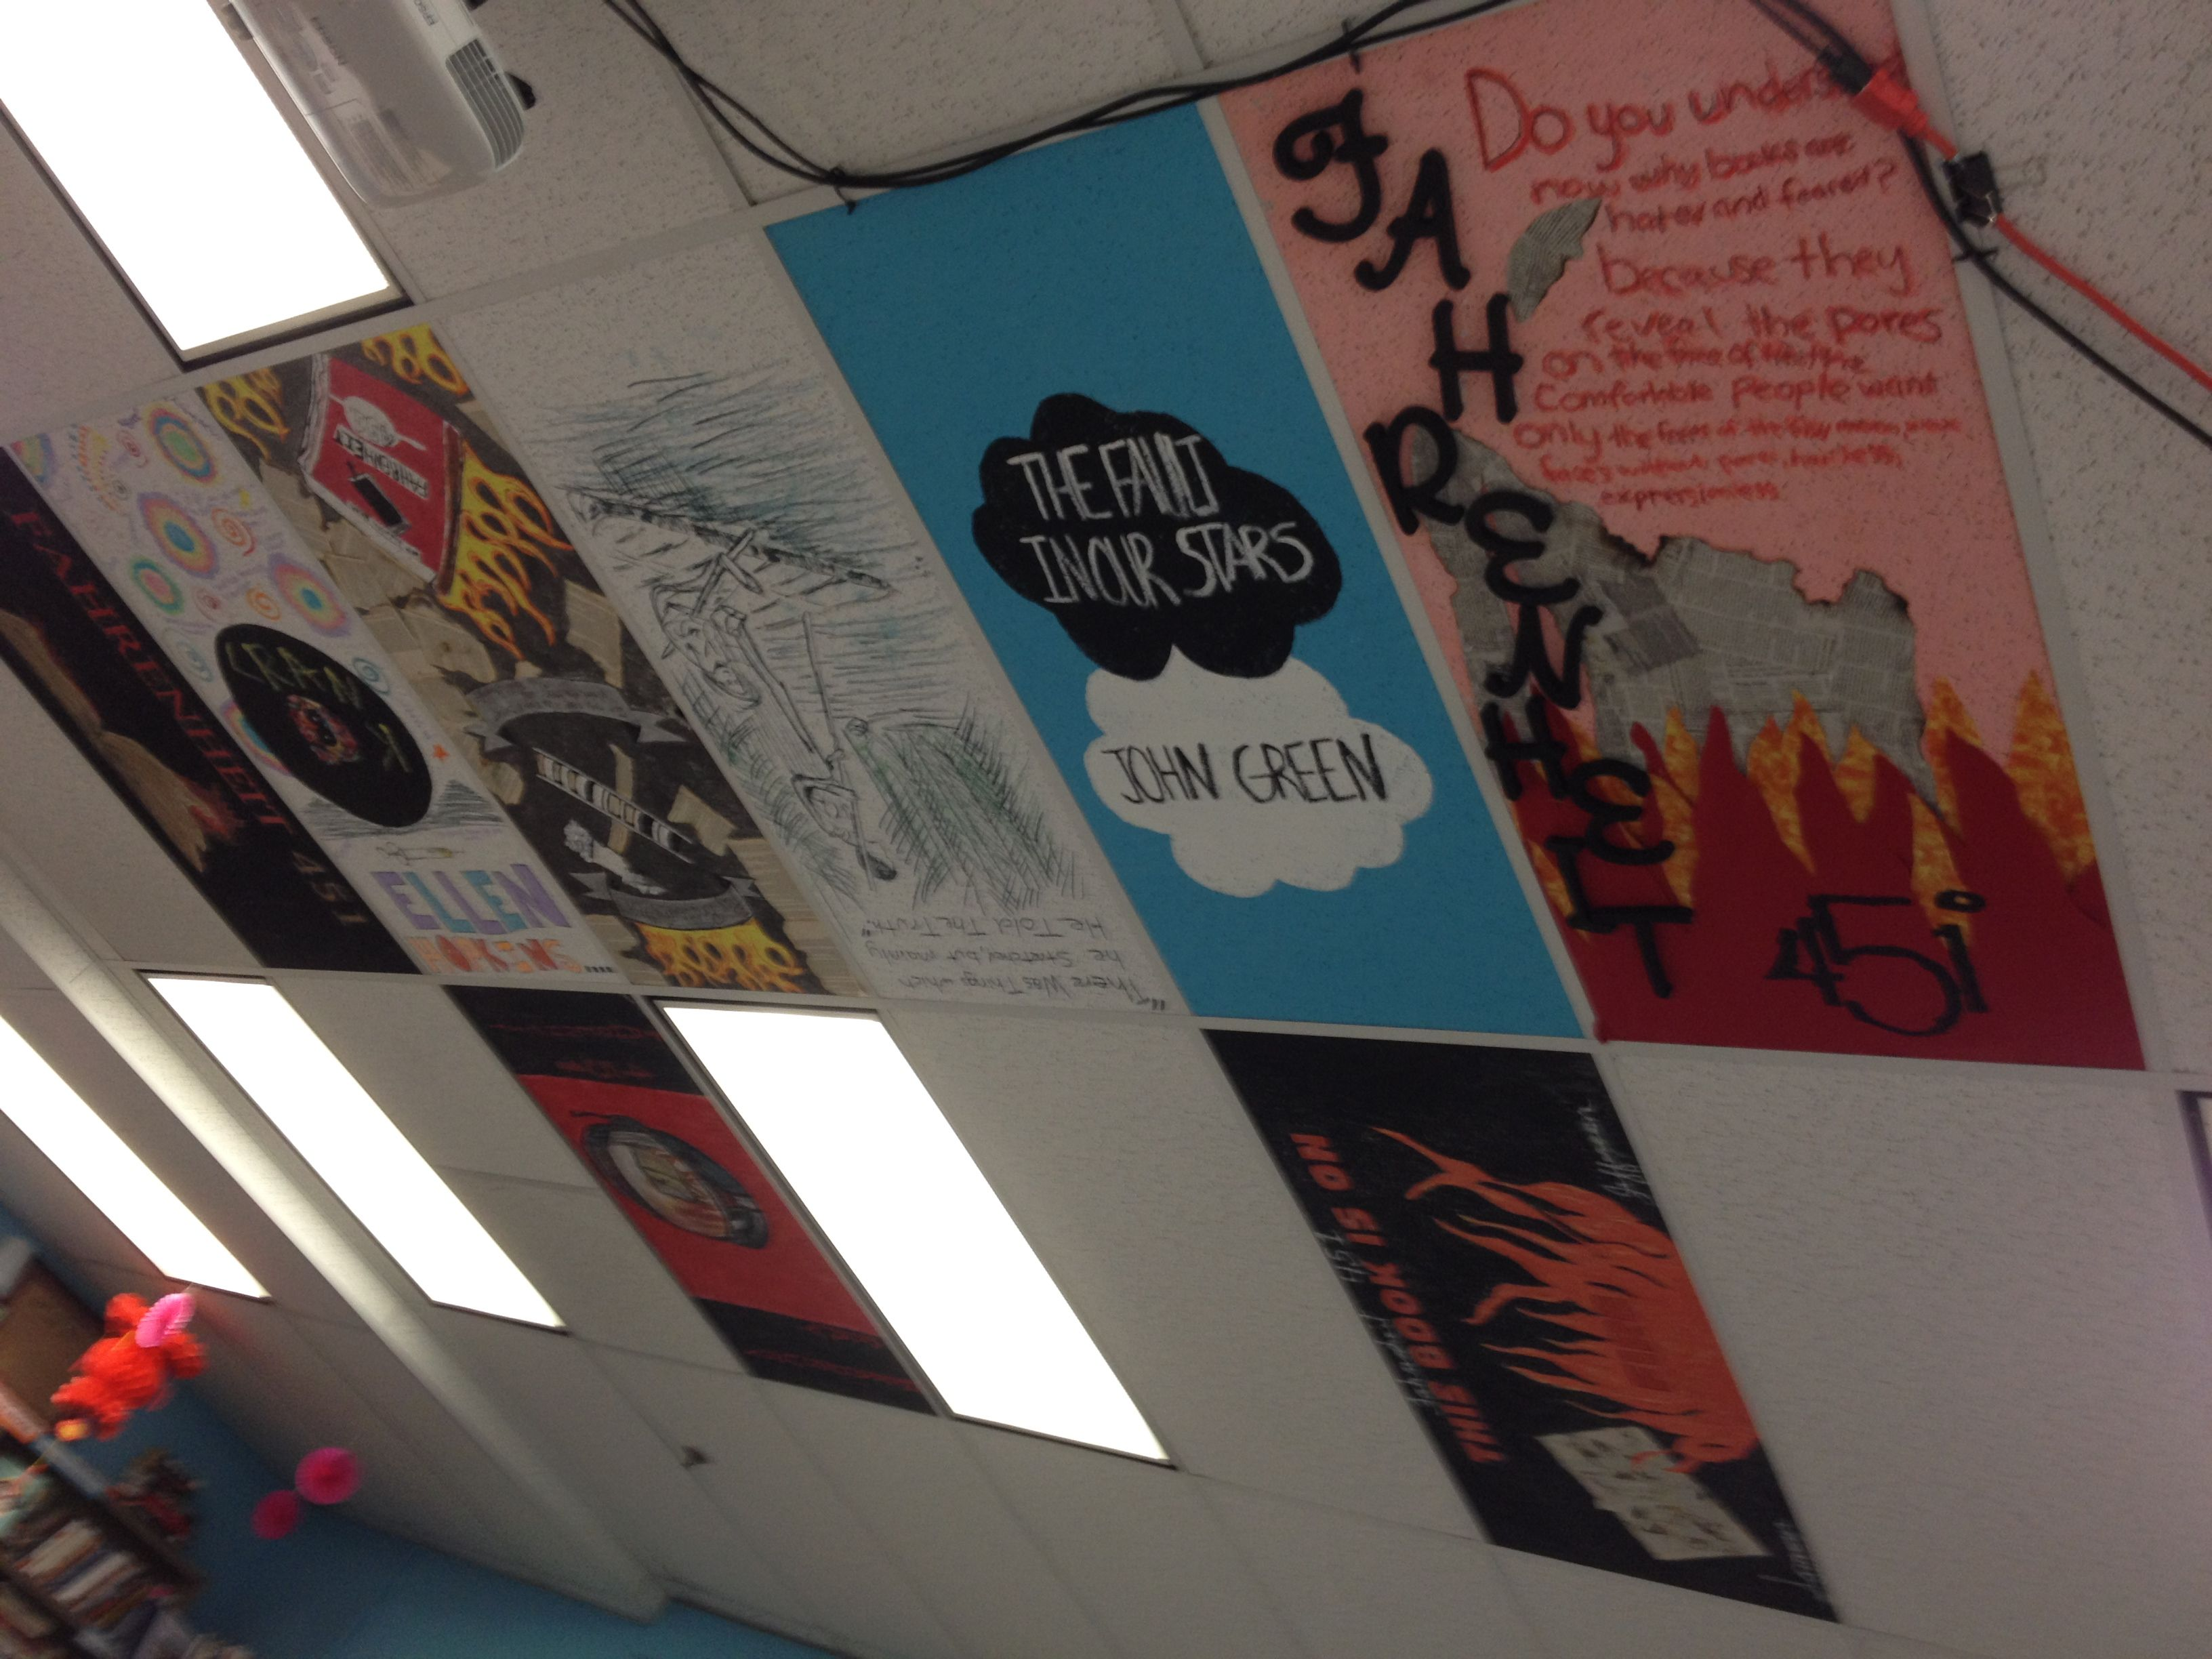 Tile Decorations Mesmerizing Paint Ceiling Tiles With Book Themesbest Way To Display Student Design Ideas